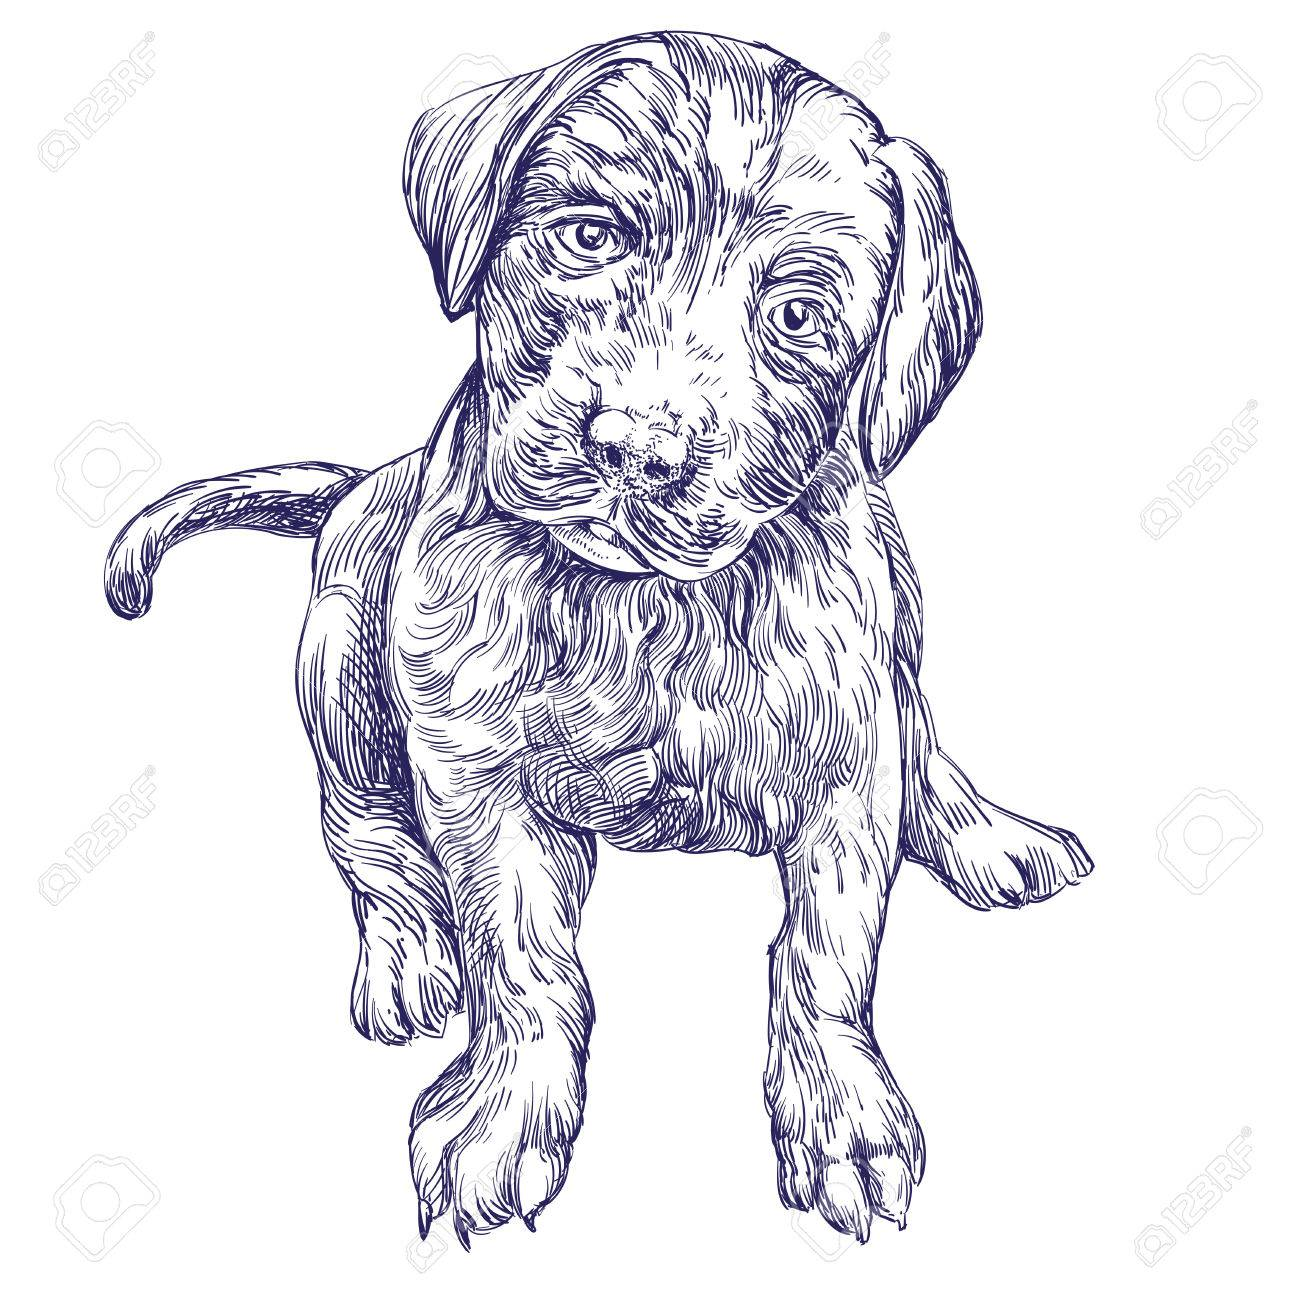 Dog Sketch Drawing at GetDrawings.com | Free for personal use Dog ...